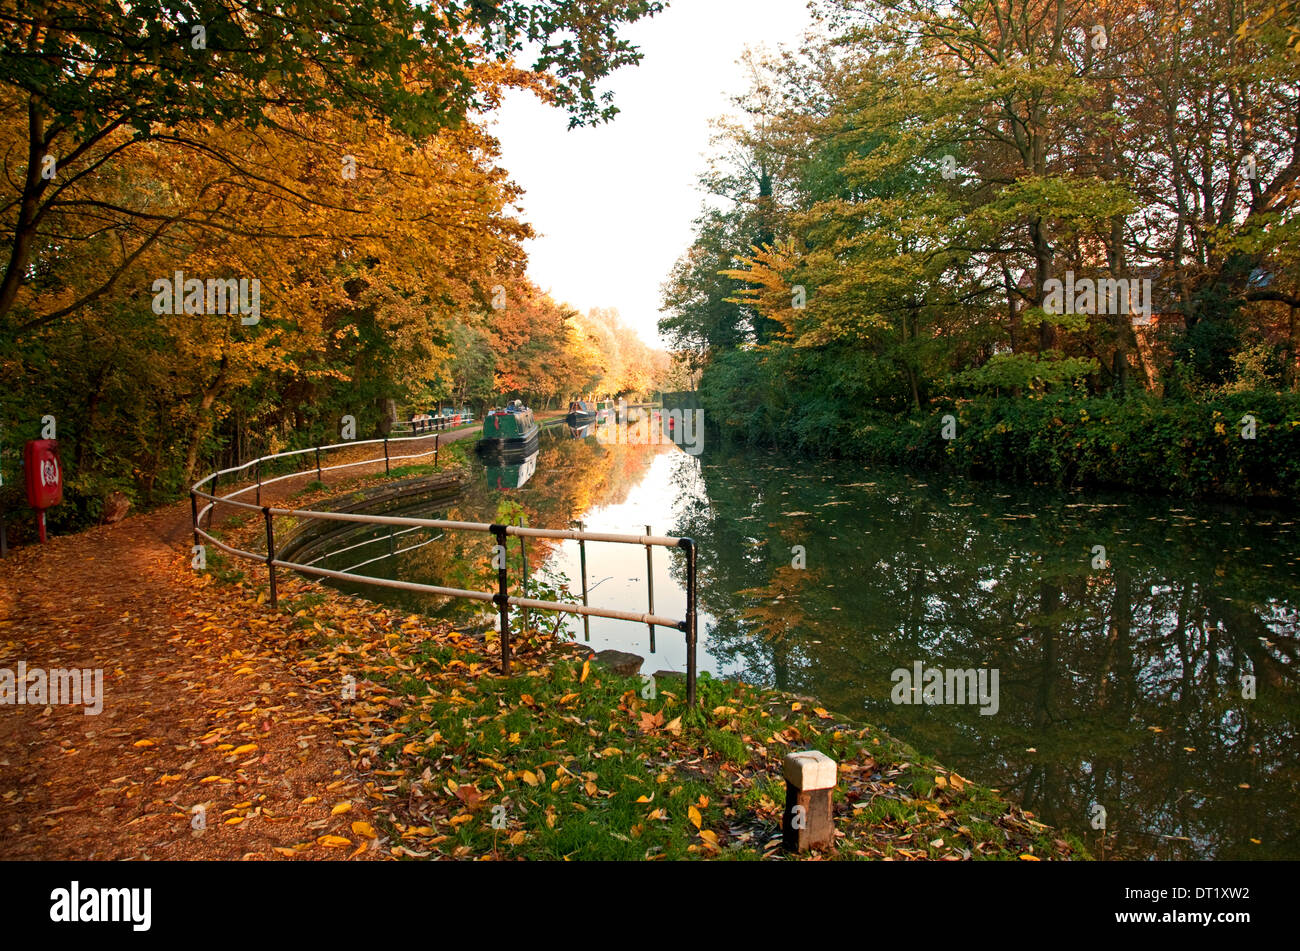 Autumn trees, Oxford Canal - Stock Image